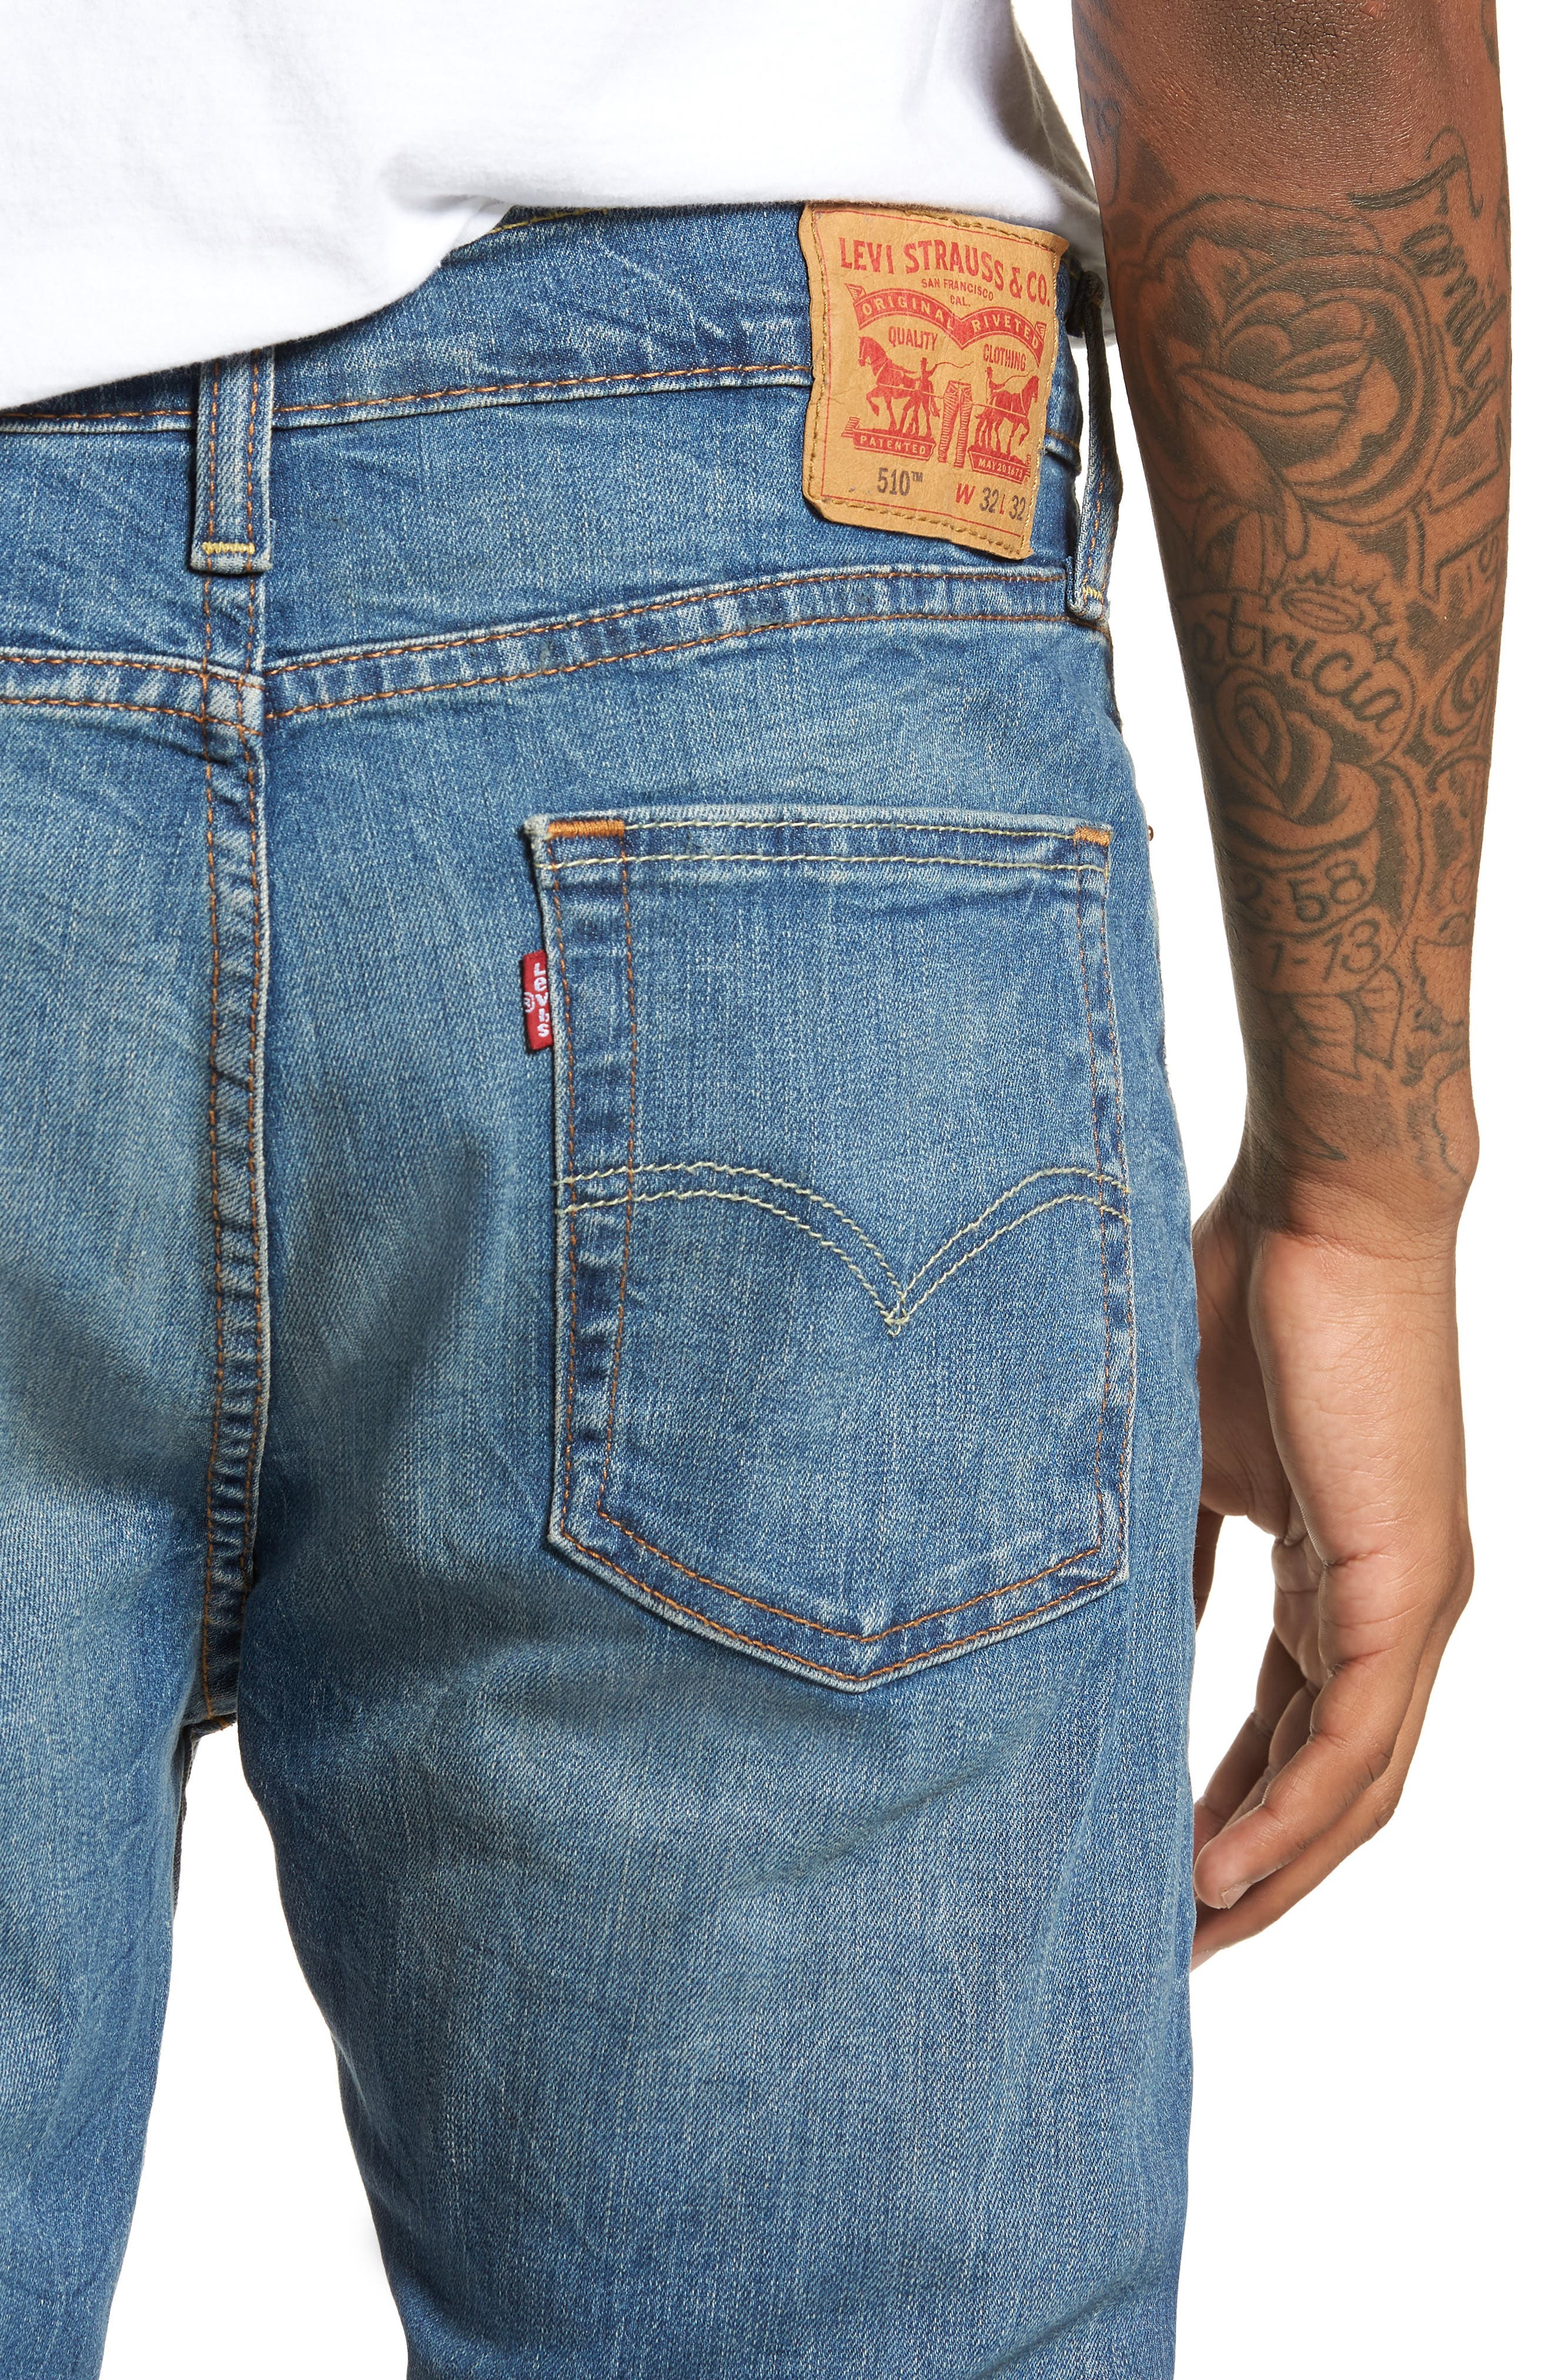 510<sup>™</sup> Skinny Fit Jeans,                             Alternate thumbnail 4, color,                             427